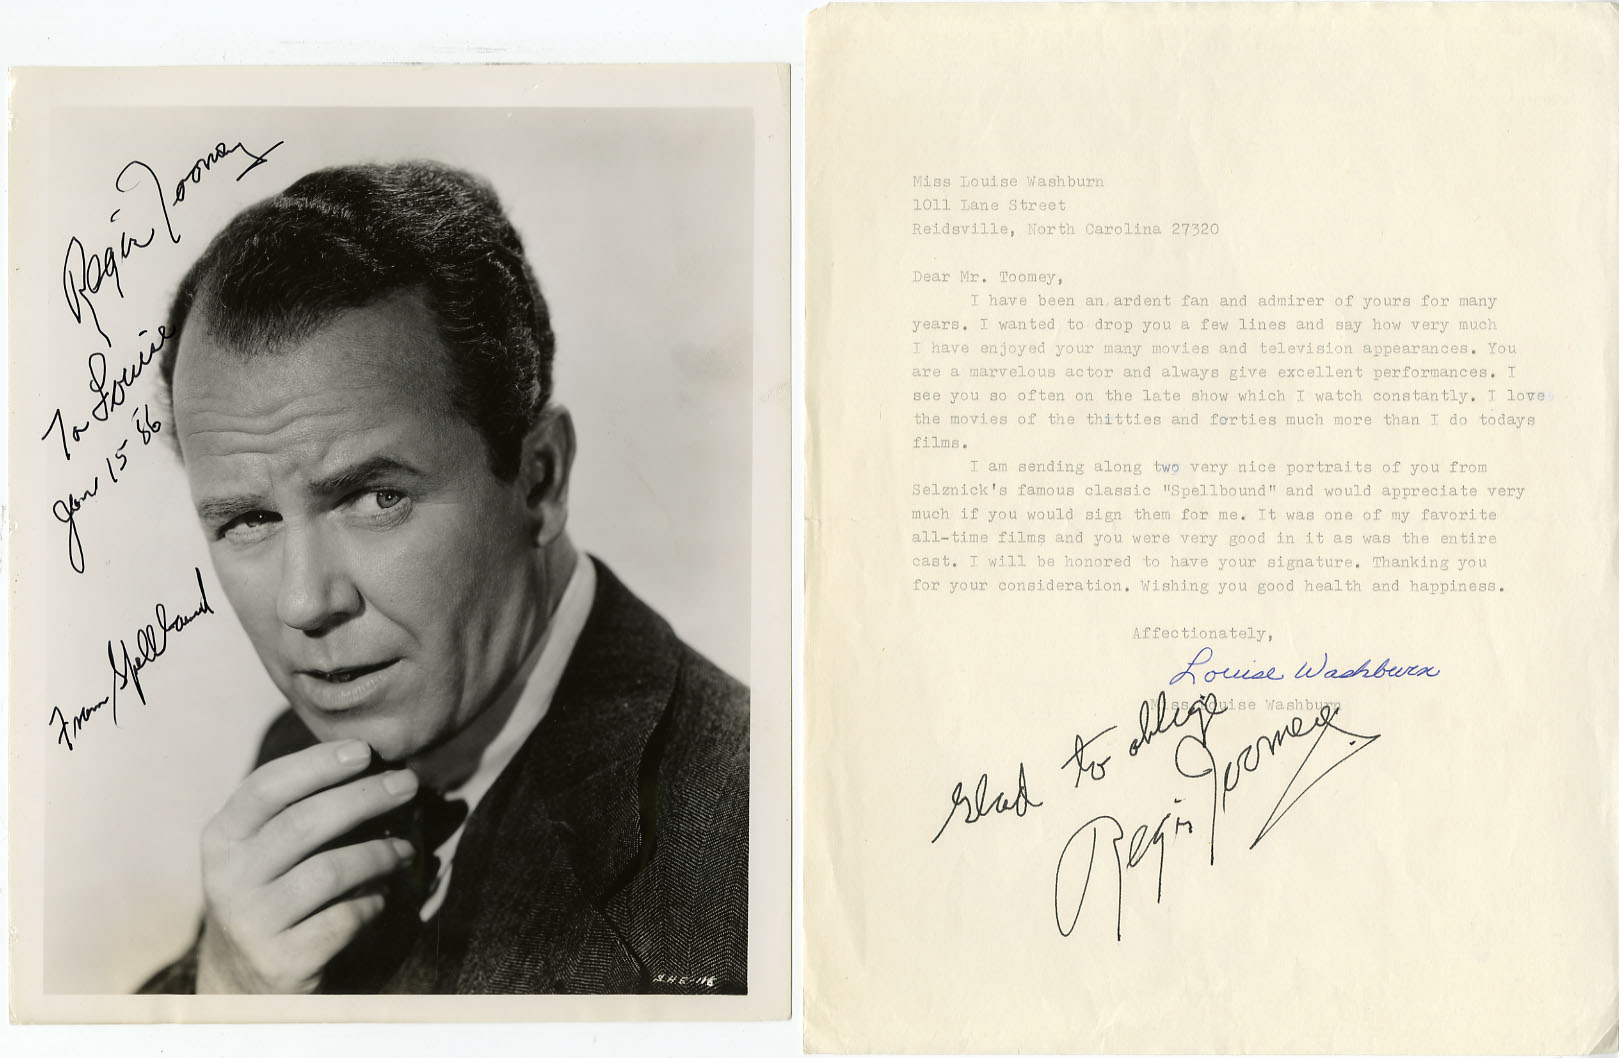 Regis Toomey REGIS TOOMEY SIGNED PHOTO from